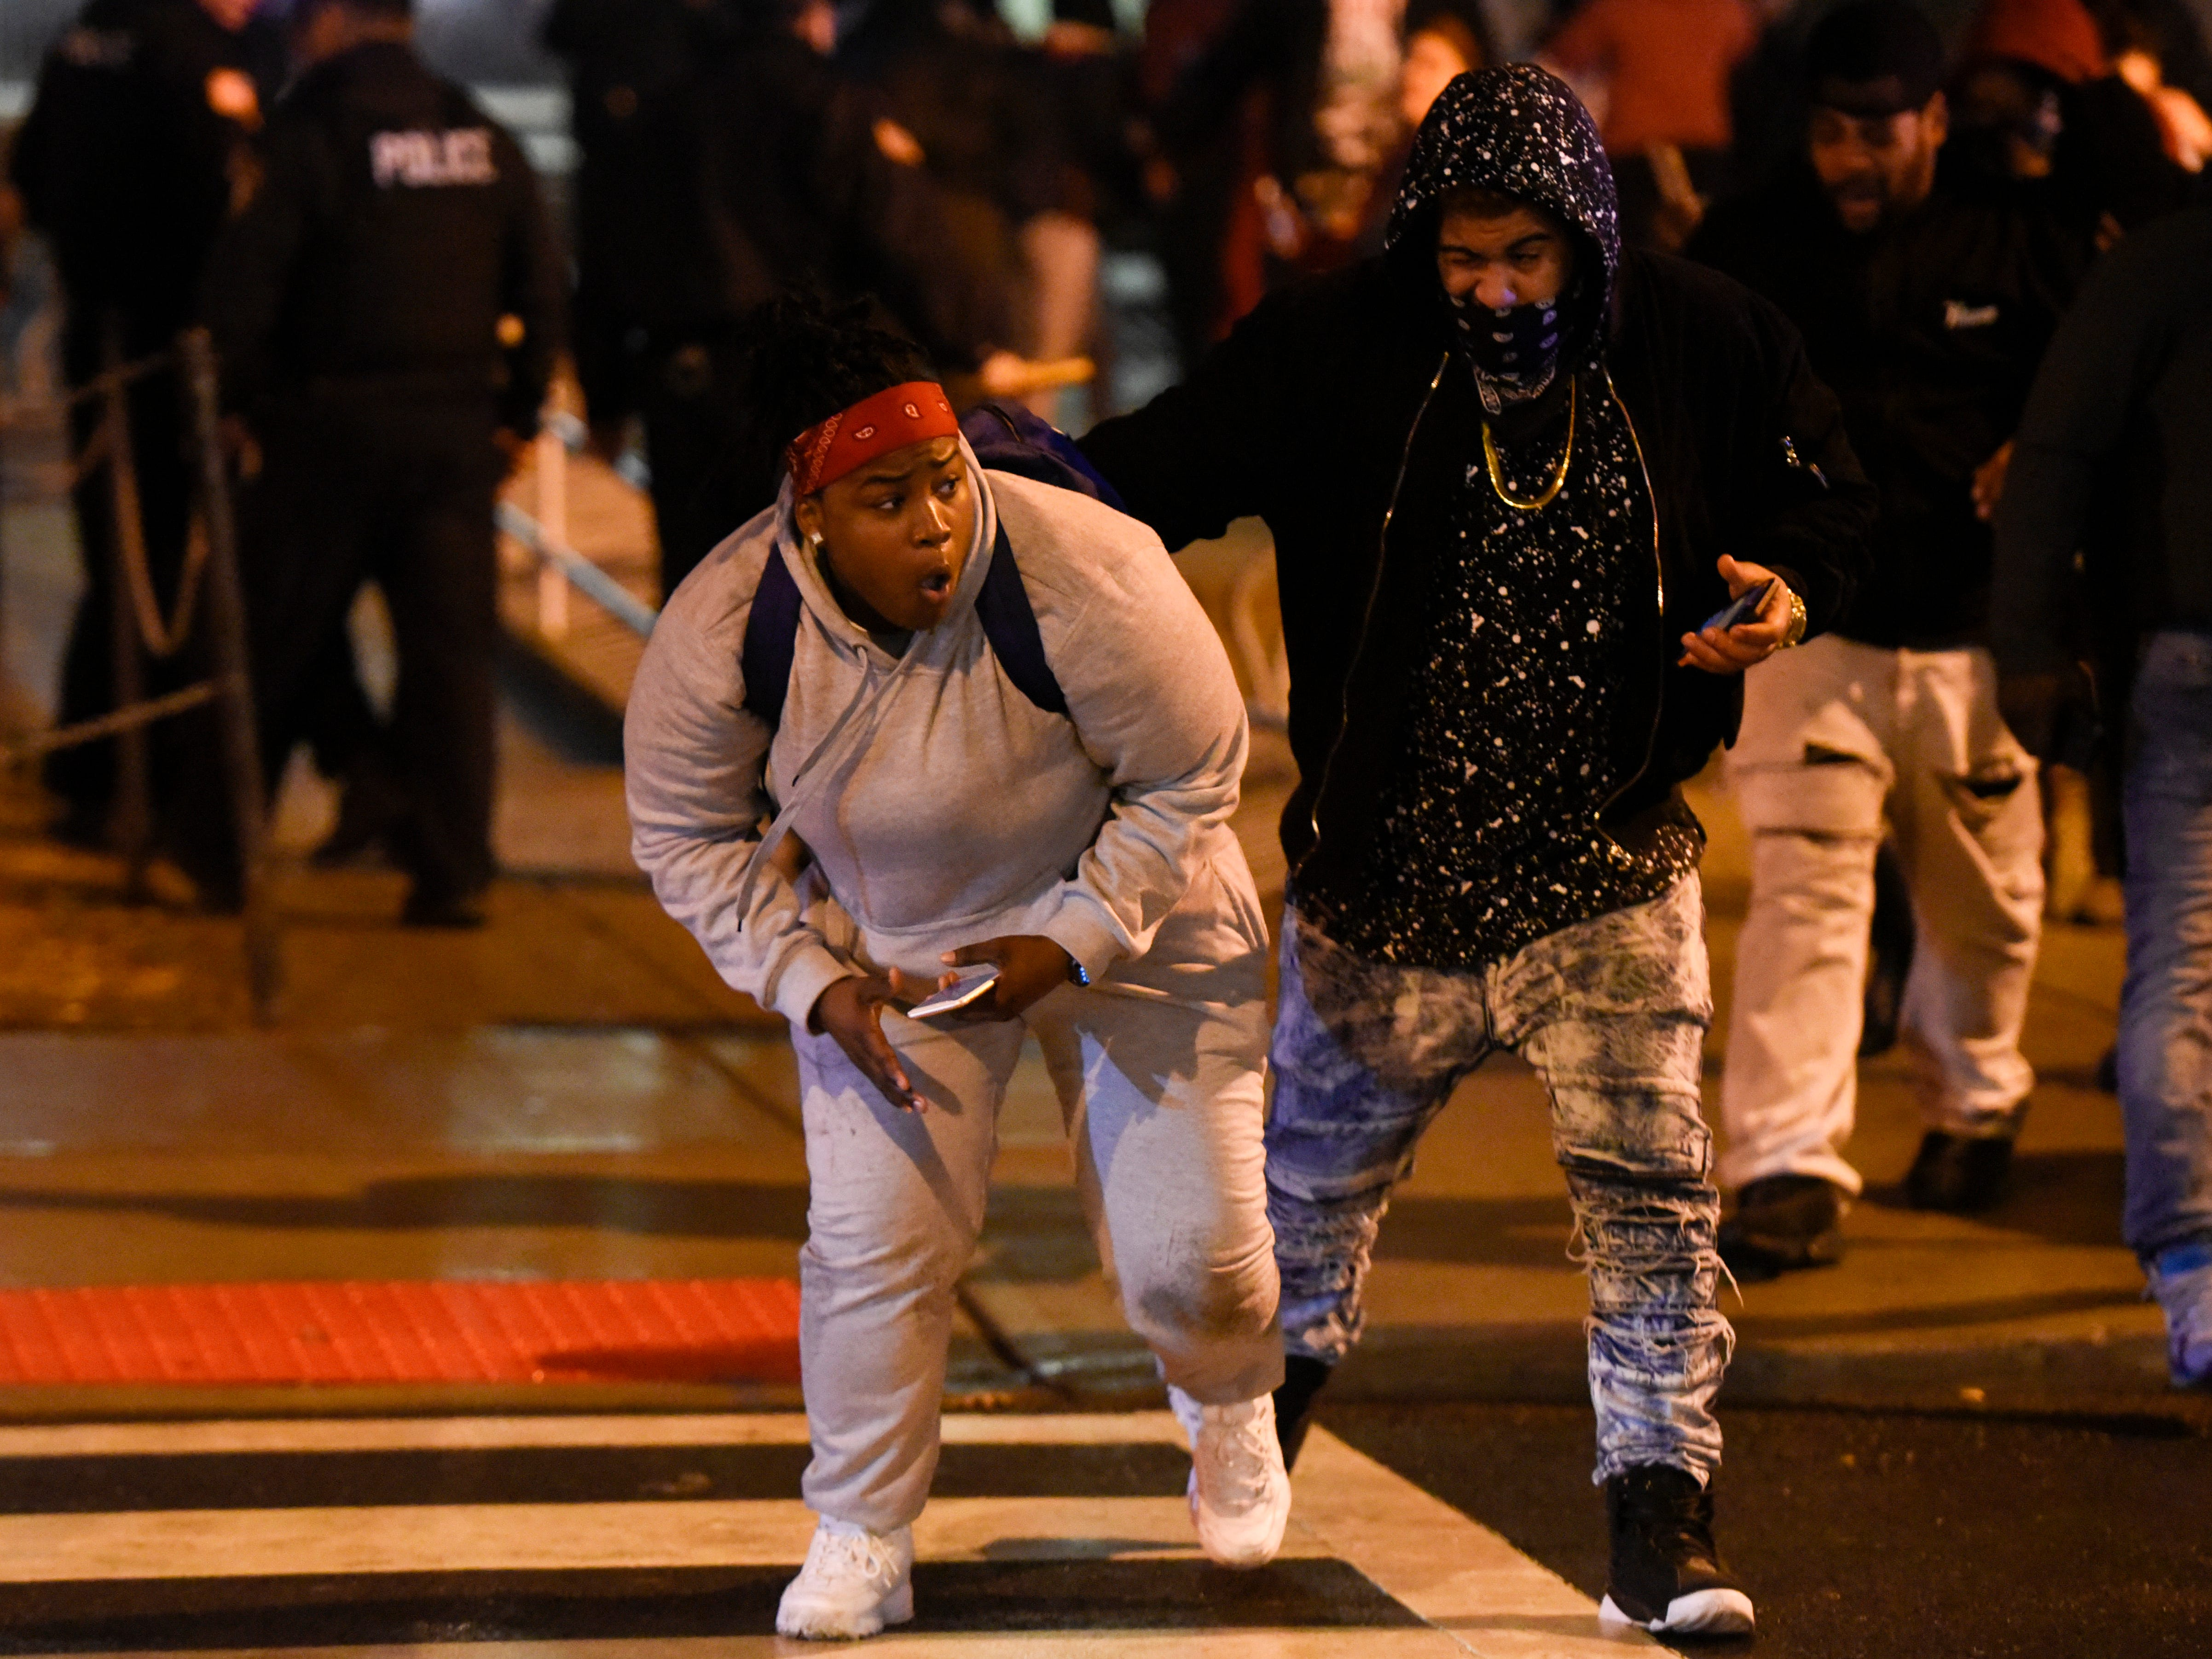 People run from Paterson police officers after being maced during a rally calling for justice for Jameek Lowery on Tuesday, Jan. 8, 2019, in Paterson. Lowery died two days after going on Facebook Live claiming that someone was out to kill him and asking the Paterson Police Department for help.